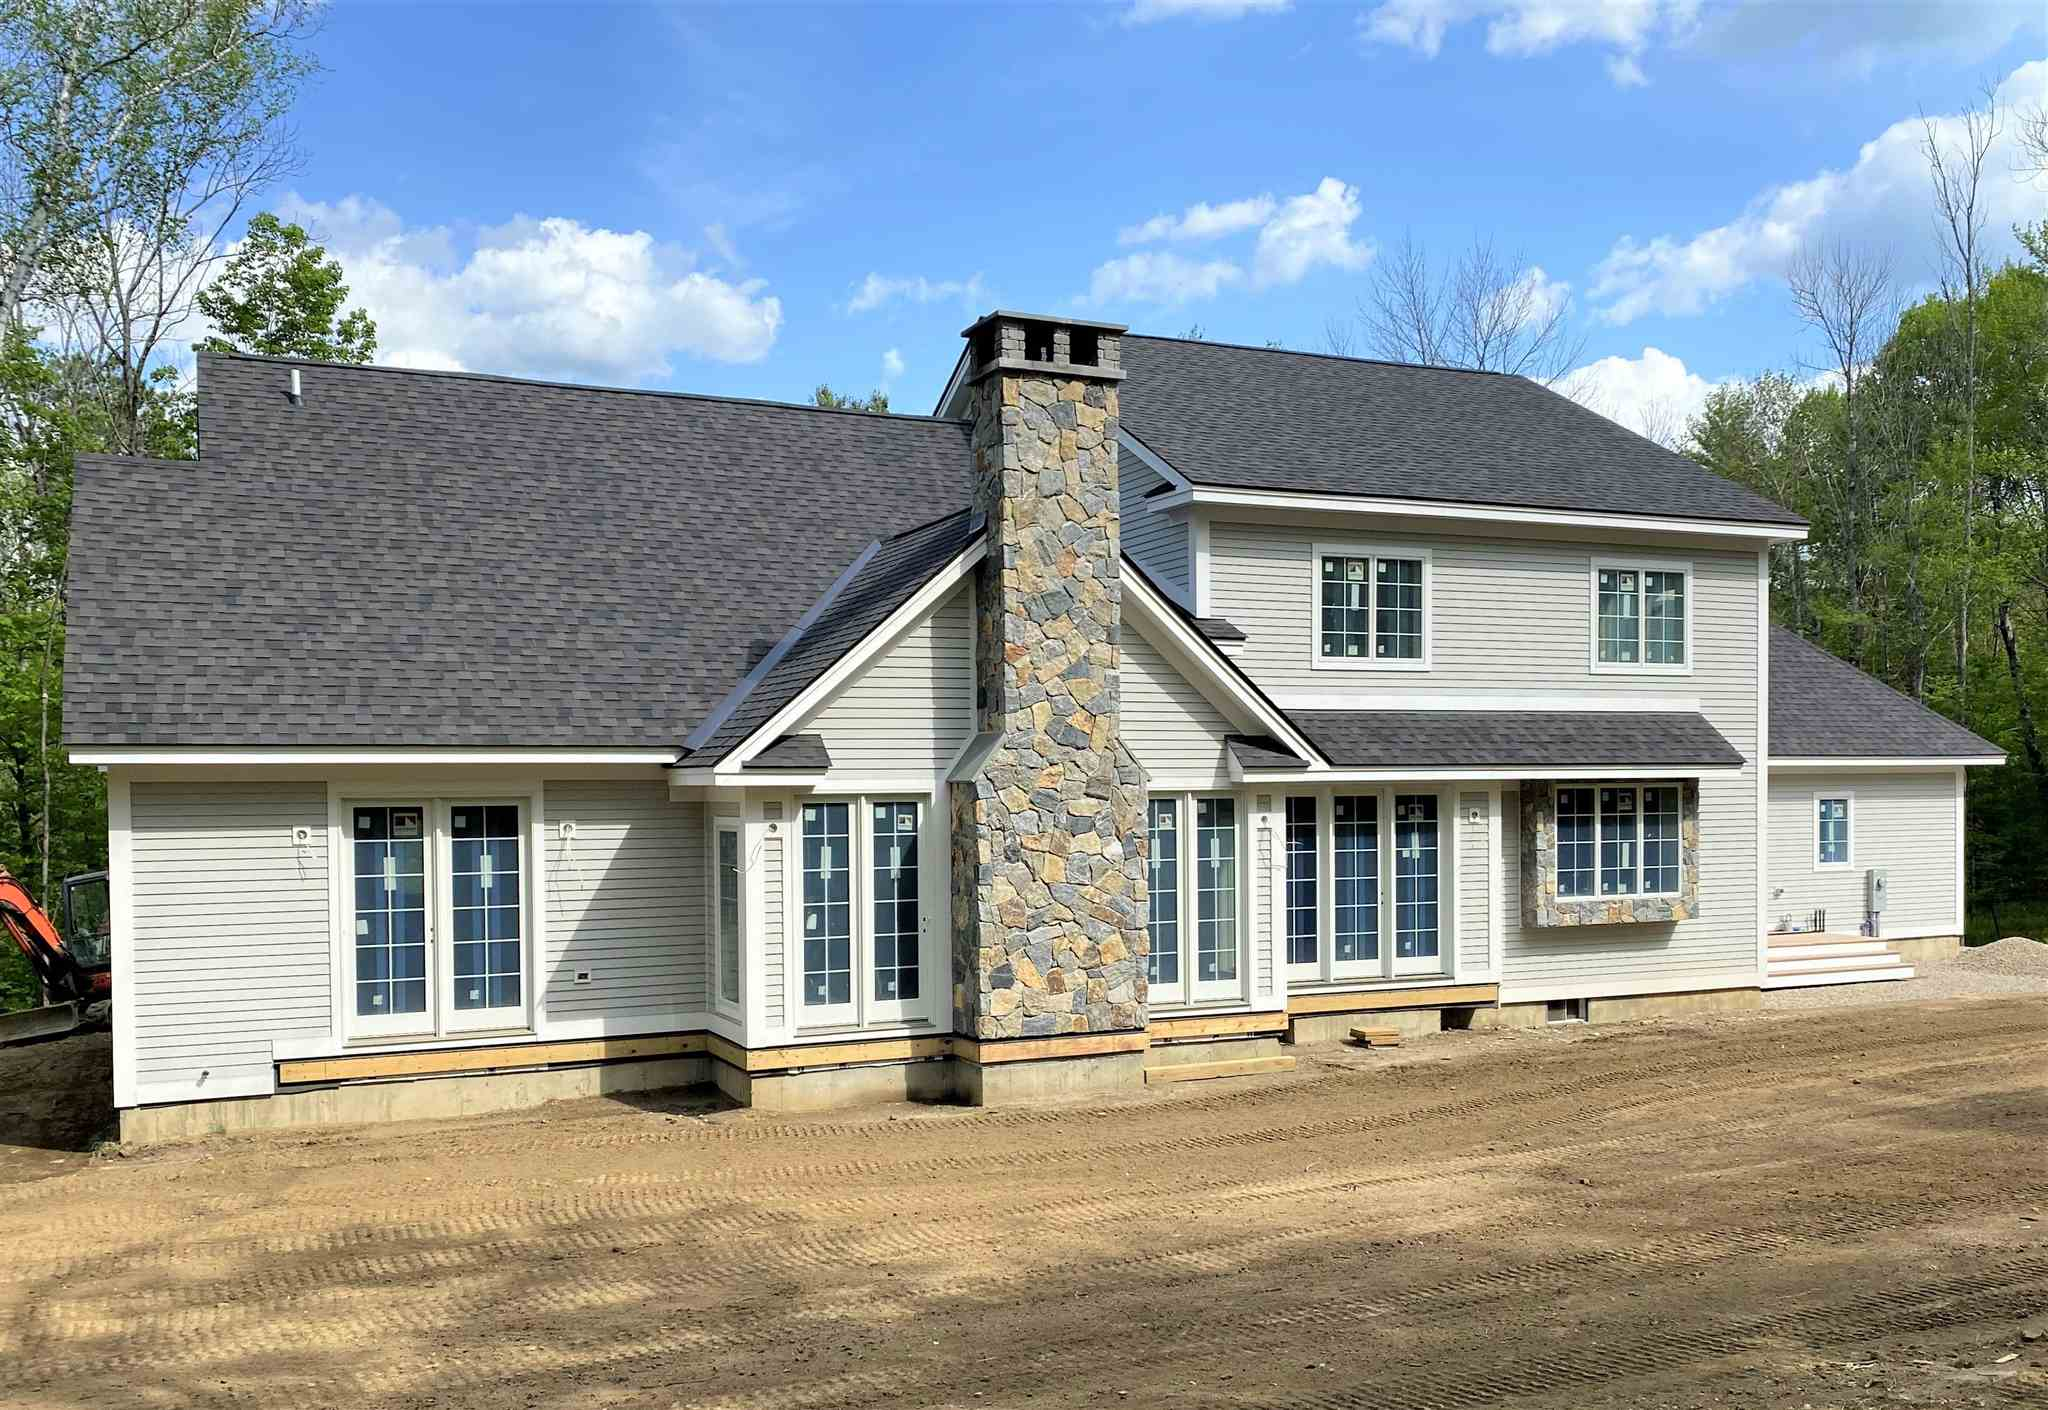 West Windsor VT 05037 Home for sale $List Price is $1,360,000